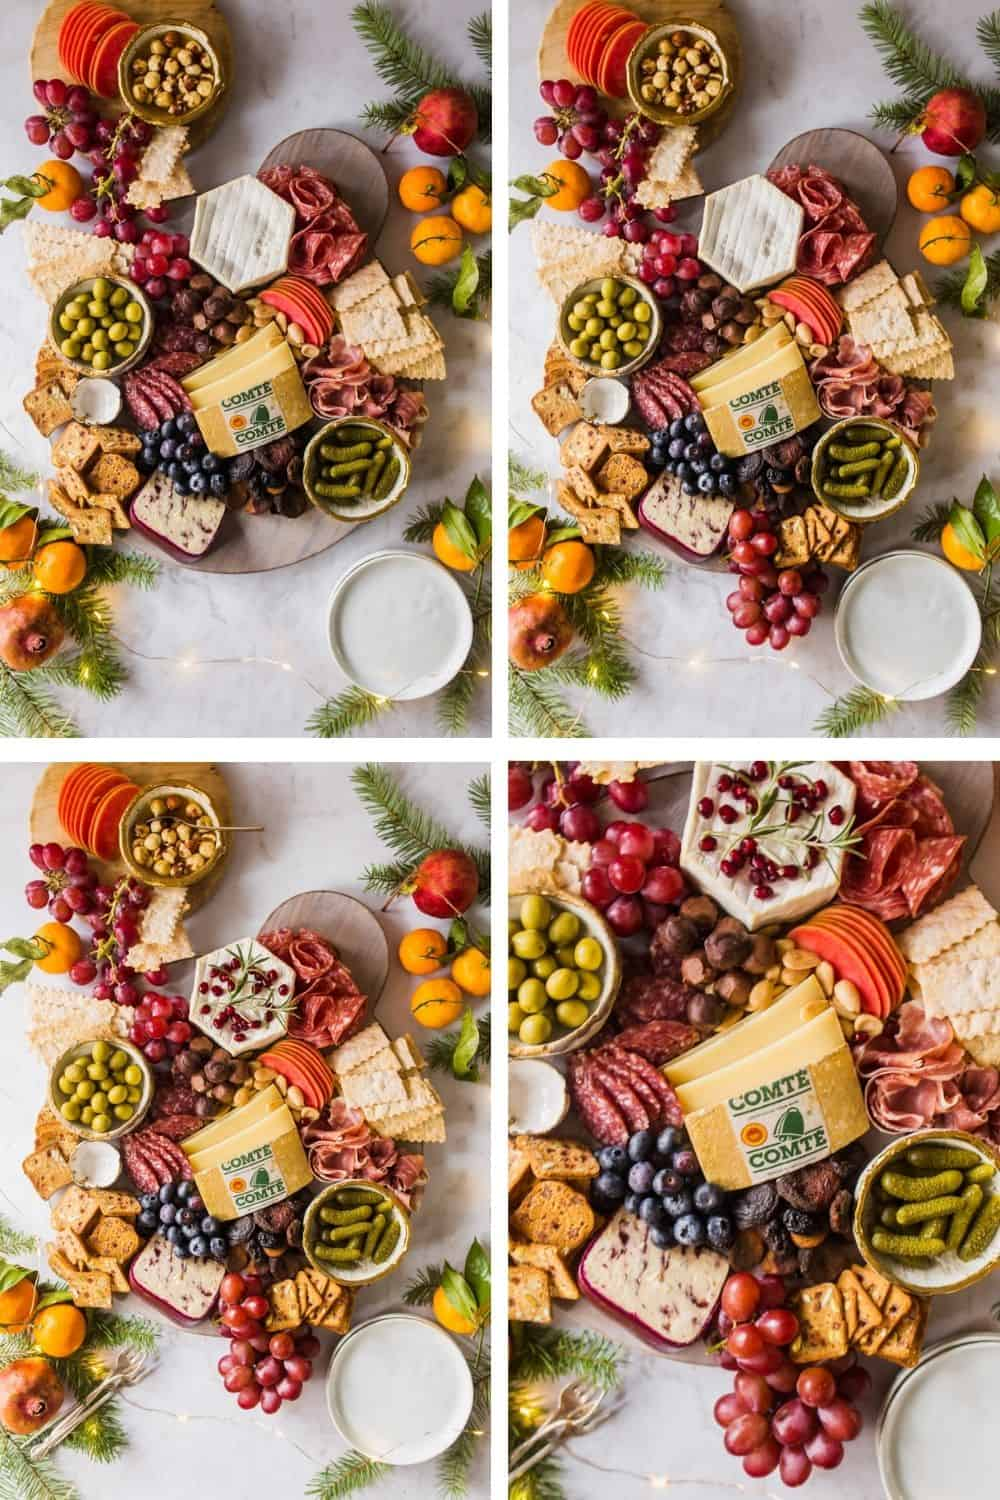 4 images of a large platter with lots of meats, cheeses, olives, pickles, and crackers.